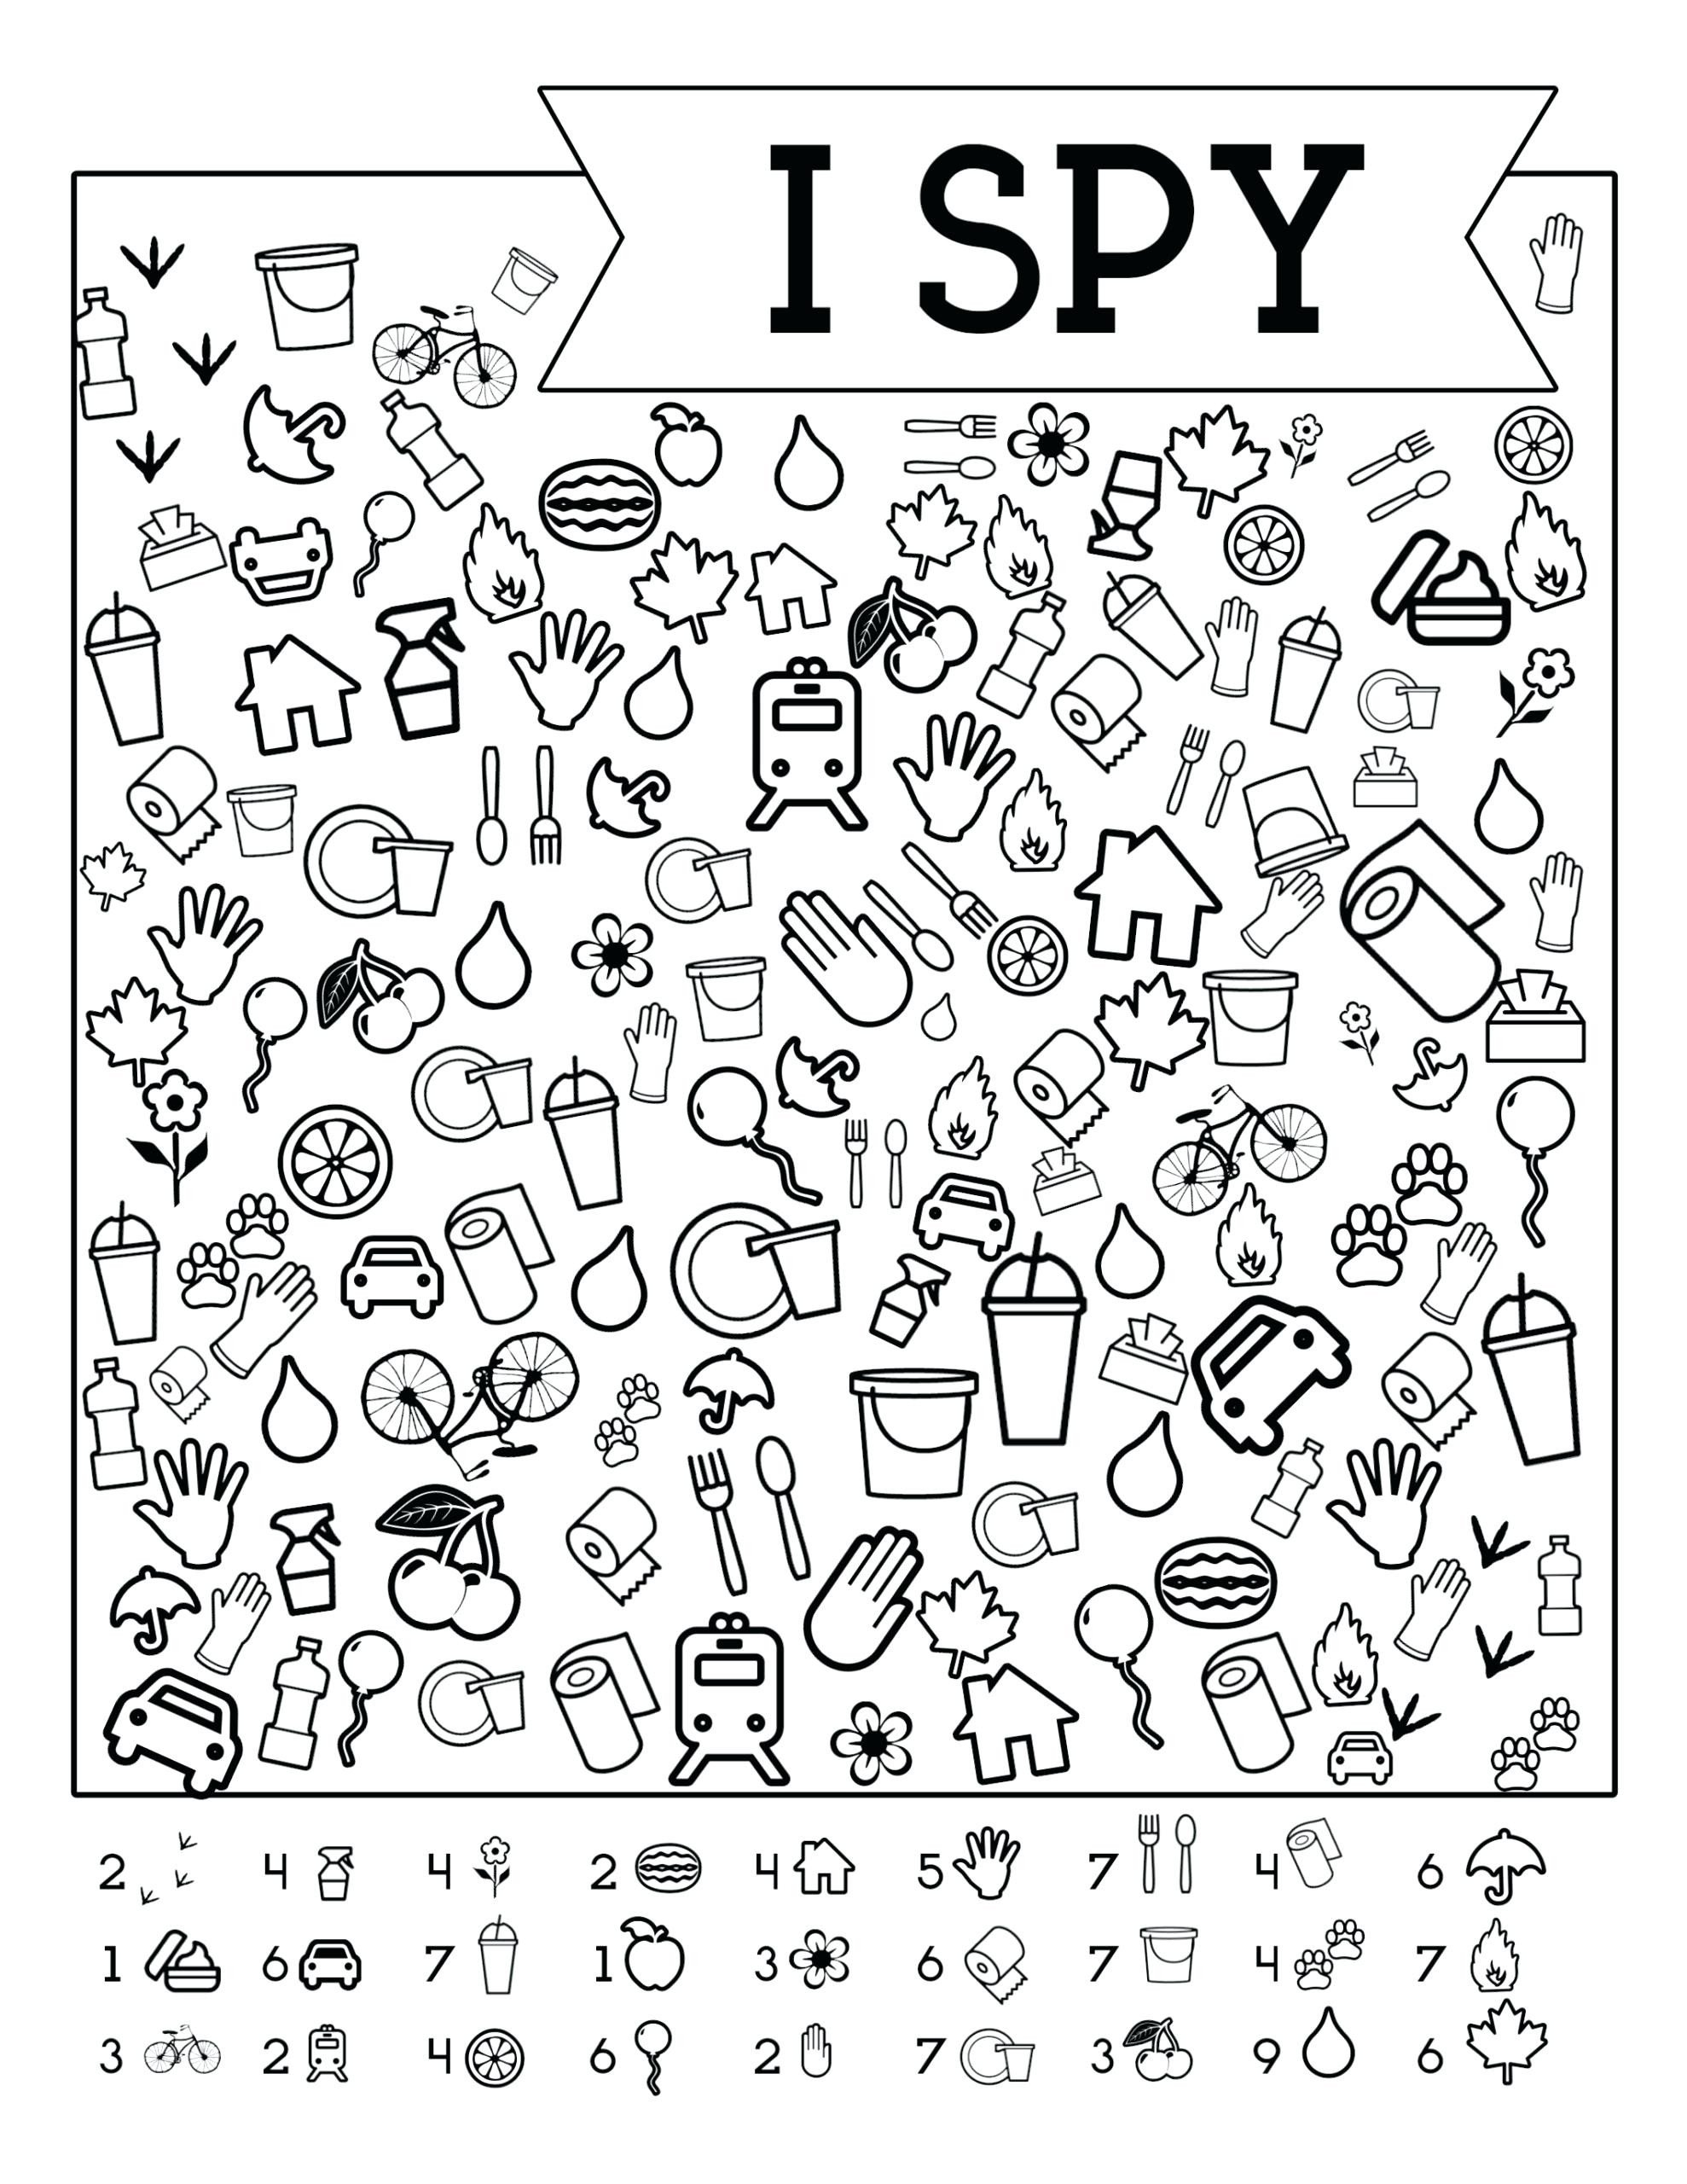 2nd grade activity sheets stunning image ideas coloring pages printable math worksheet paring adjective worksheets